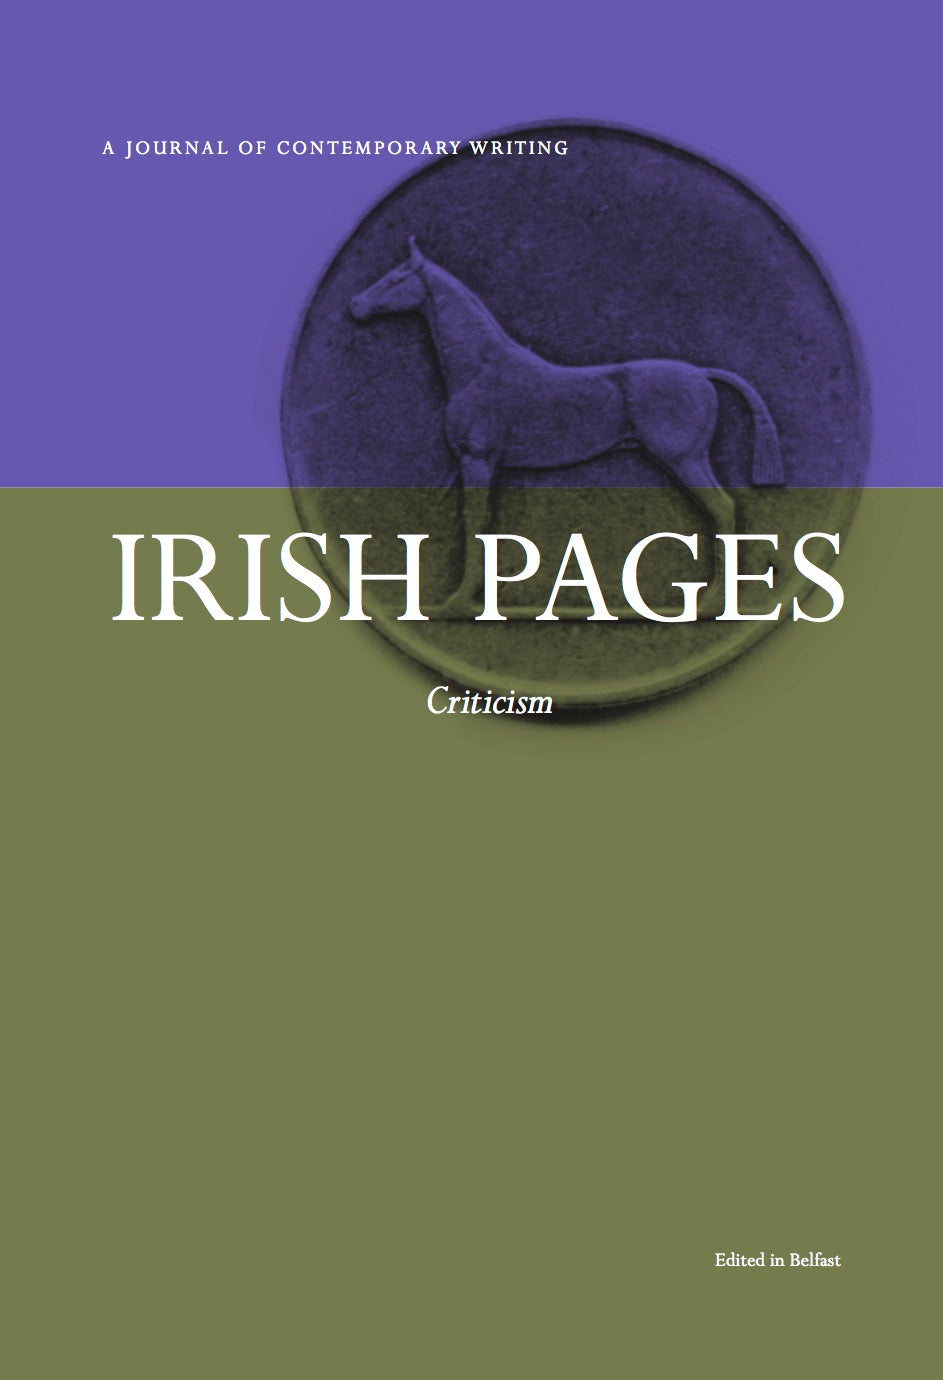 Irish Pages: Criticism - The Library Project